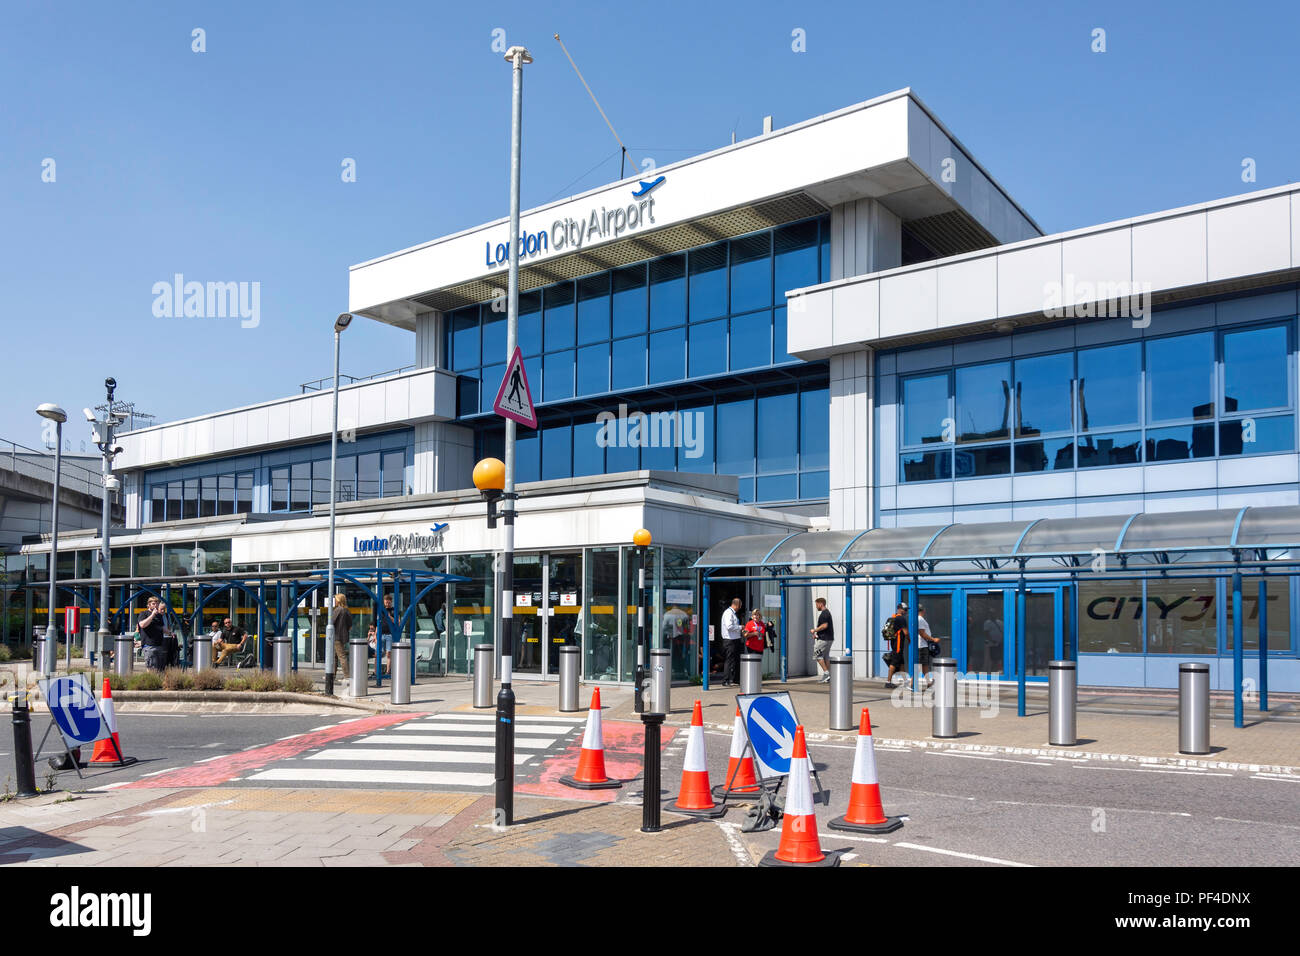 Main entrance, London City Airport, Silvertown, London Borough of Newham, Greater London, England, United Kingdom - Stock Image